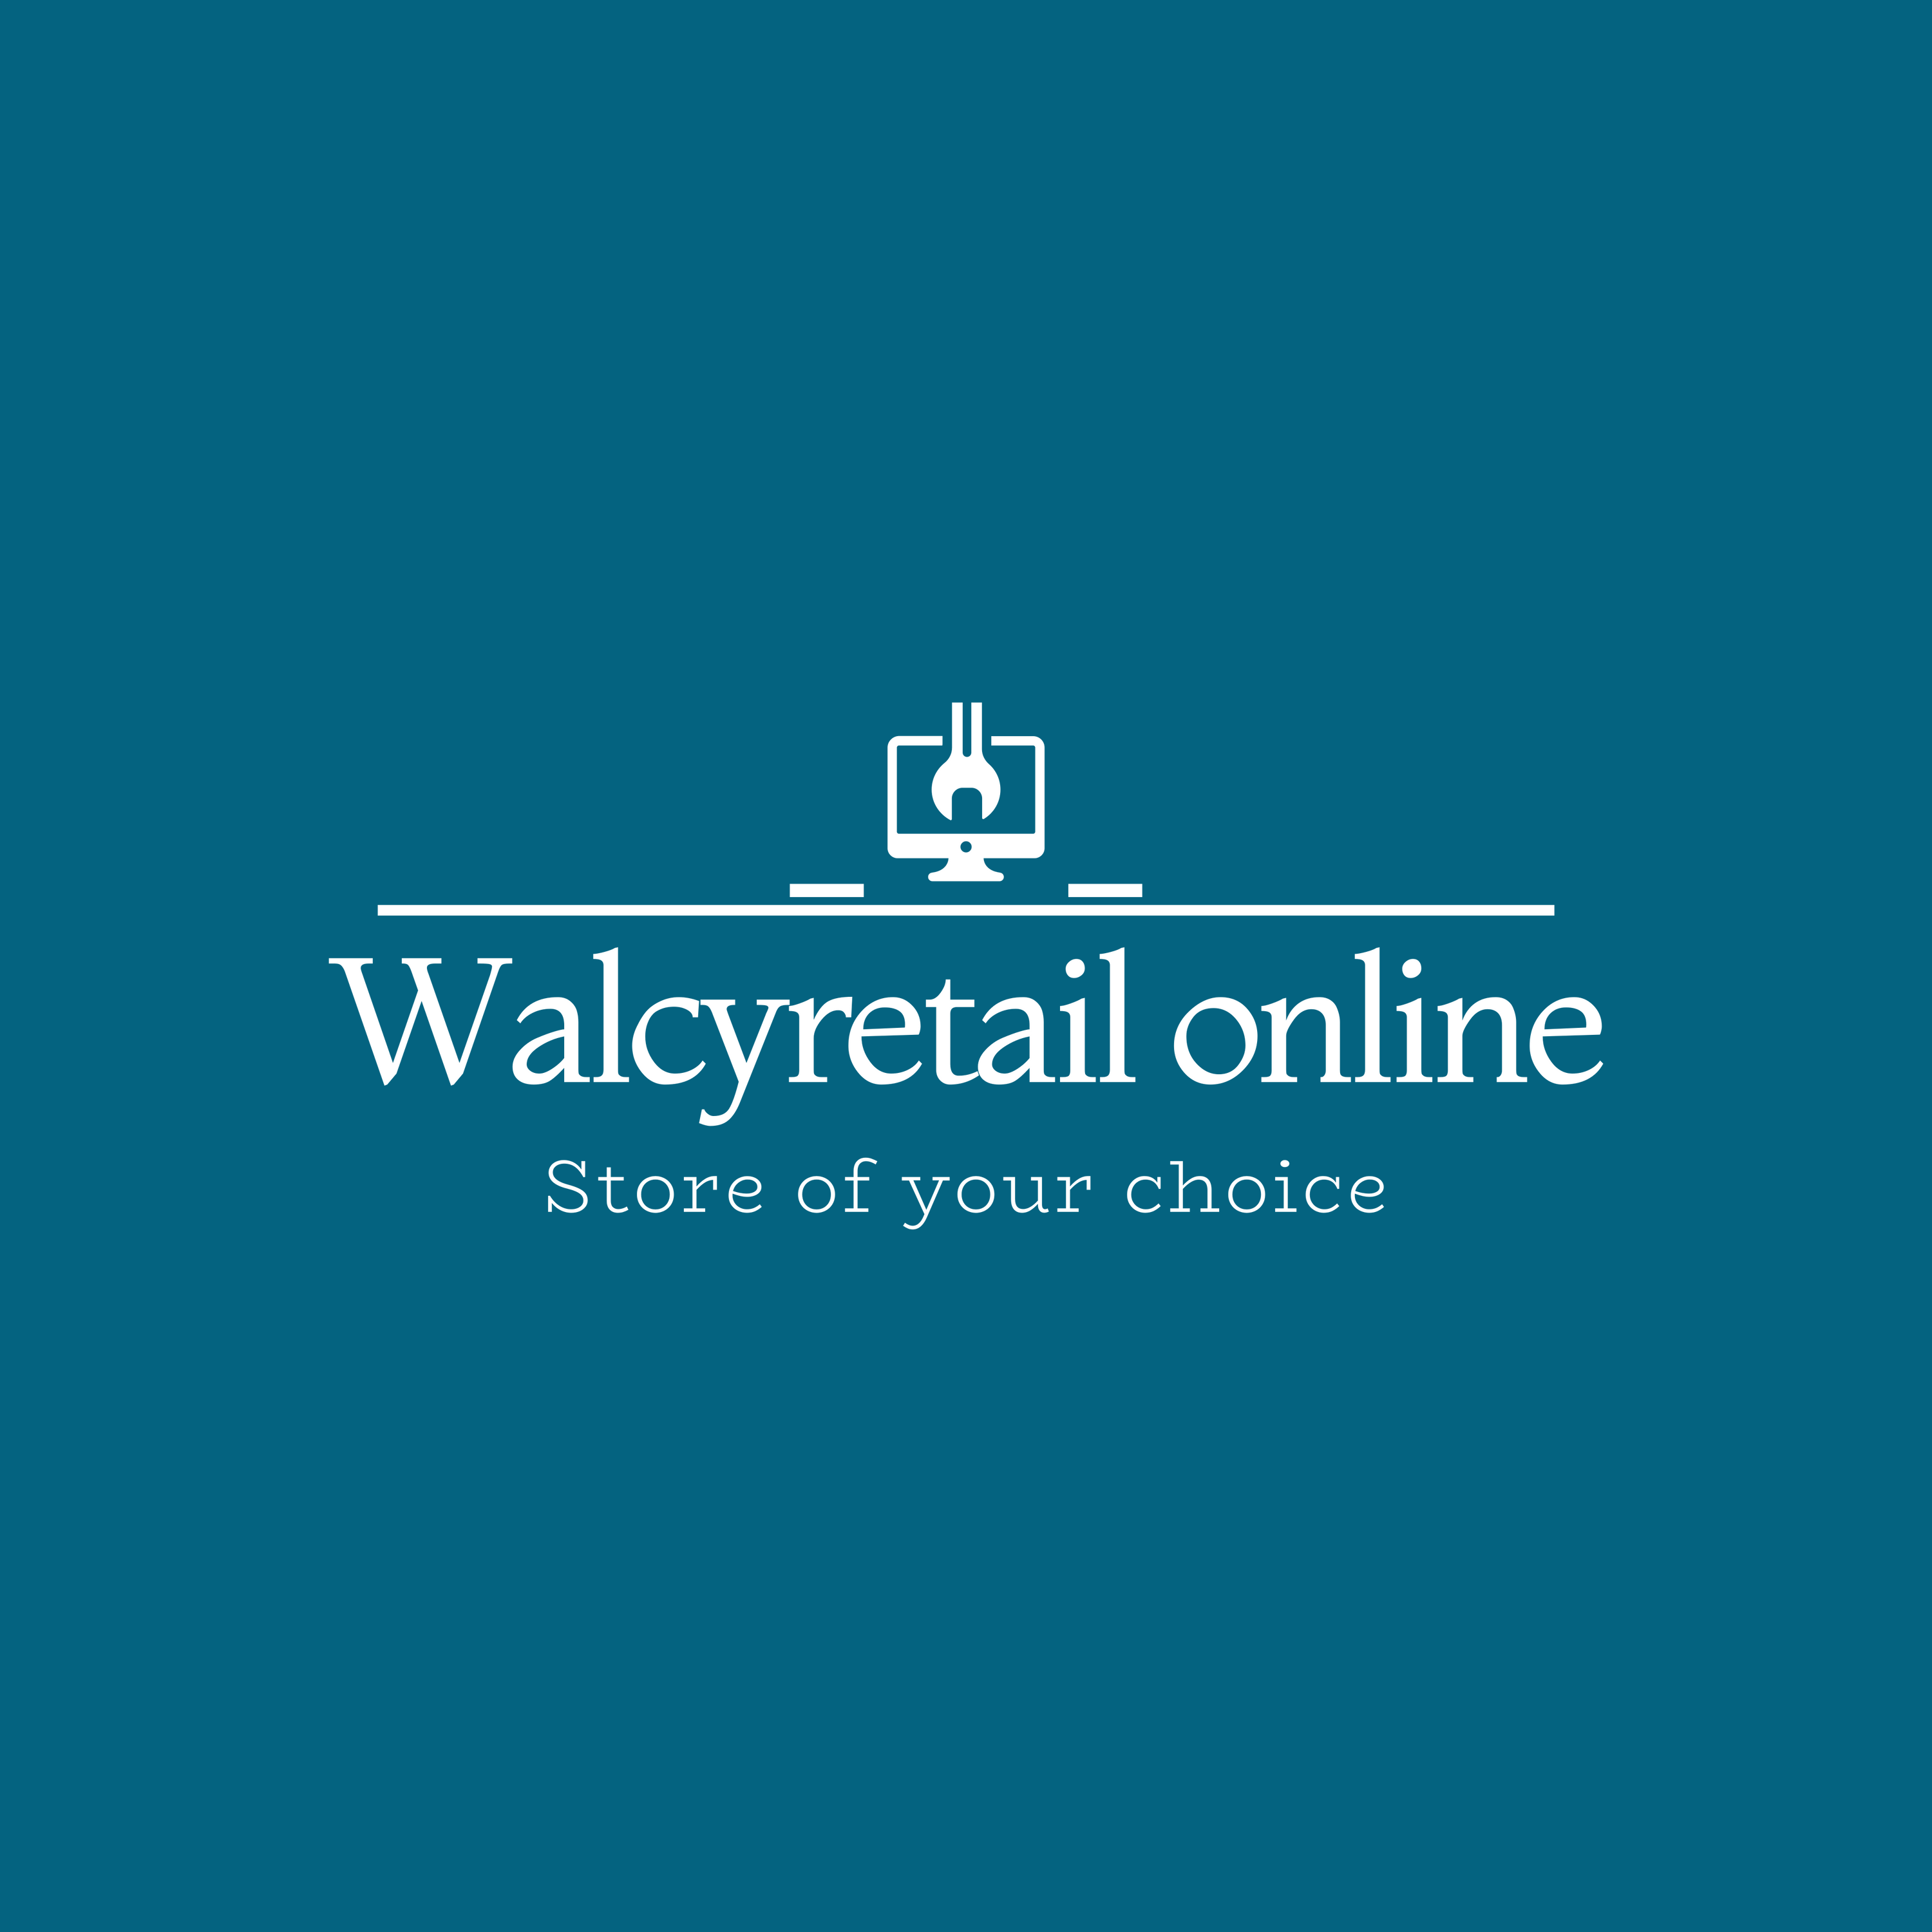 Walcyretail online